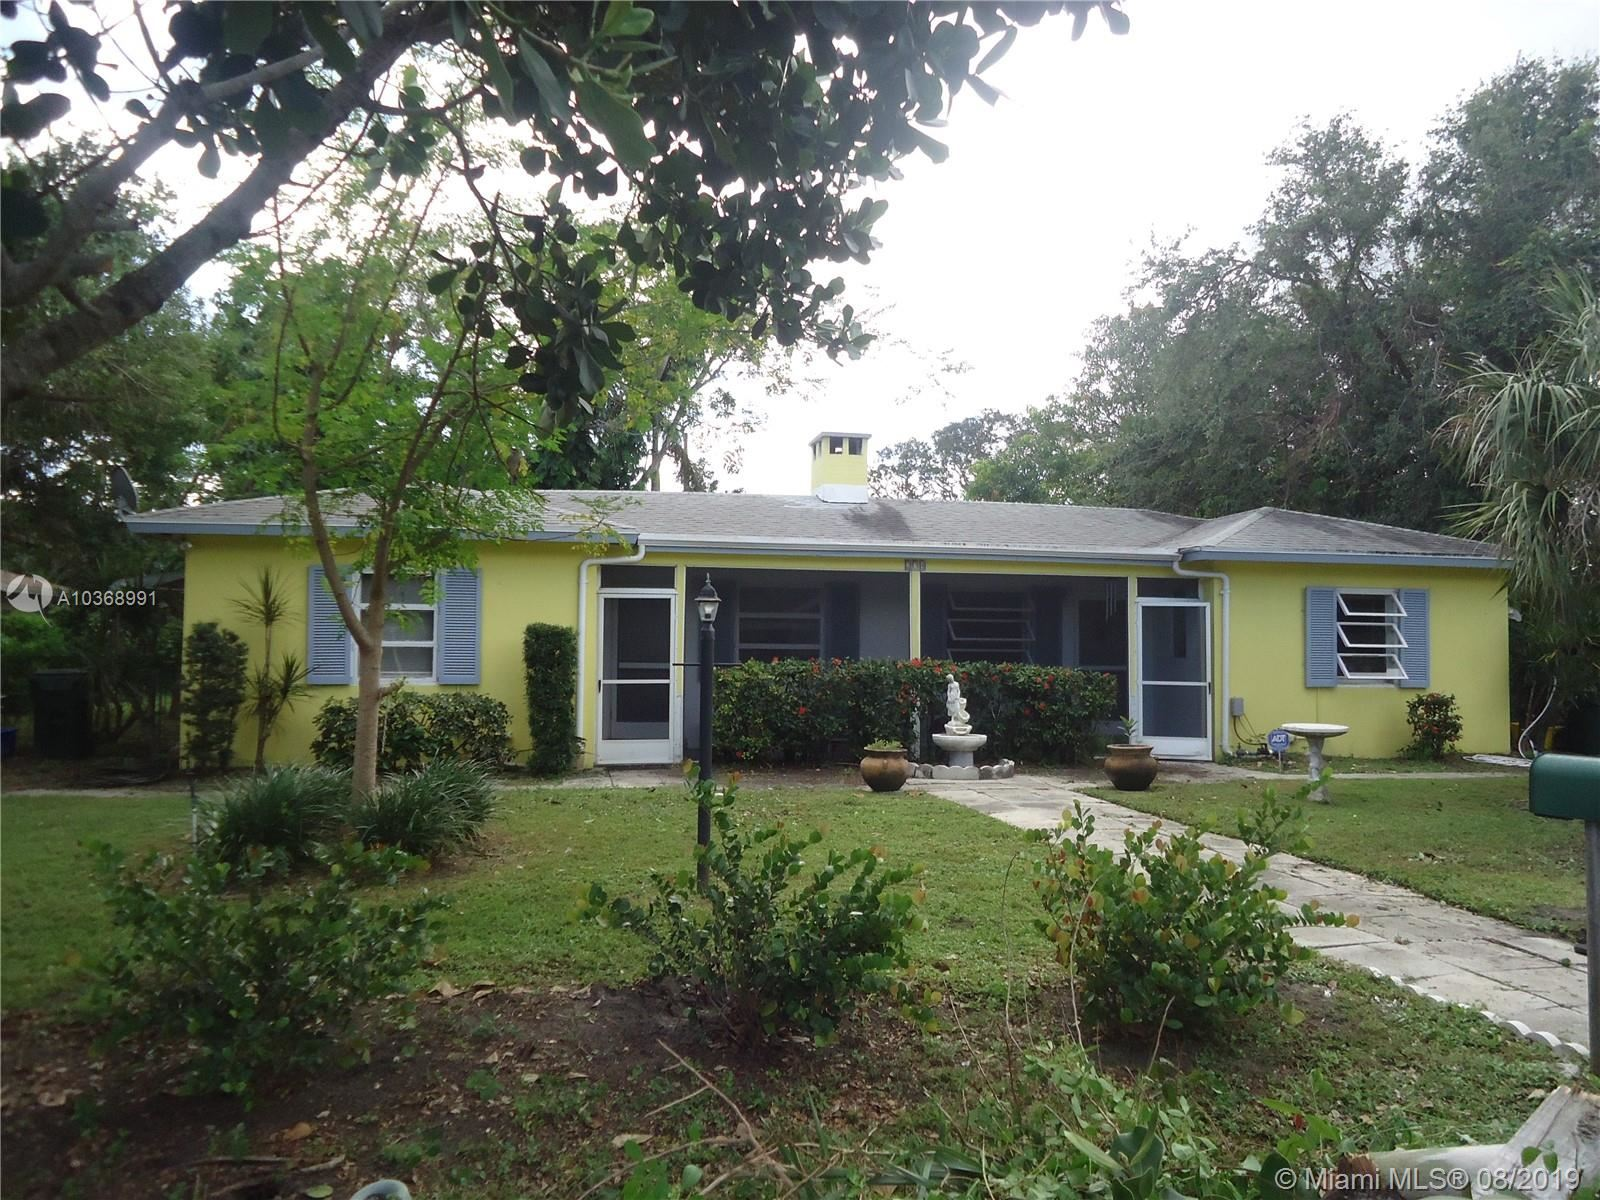 234 NE 12th St, Delray Beach, FL 33444 - MLS#: A10368991